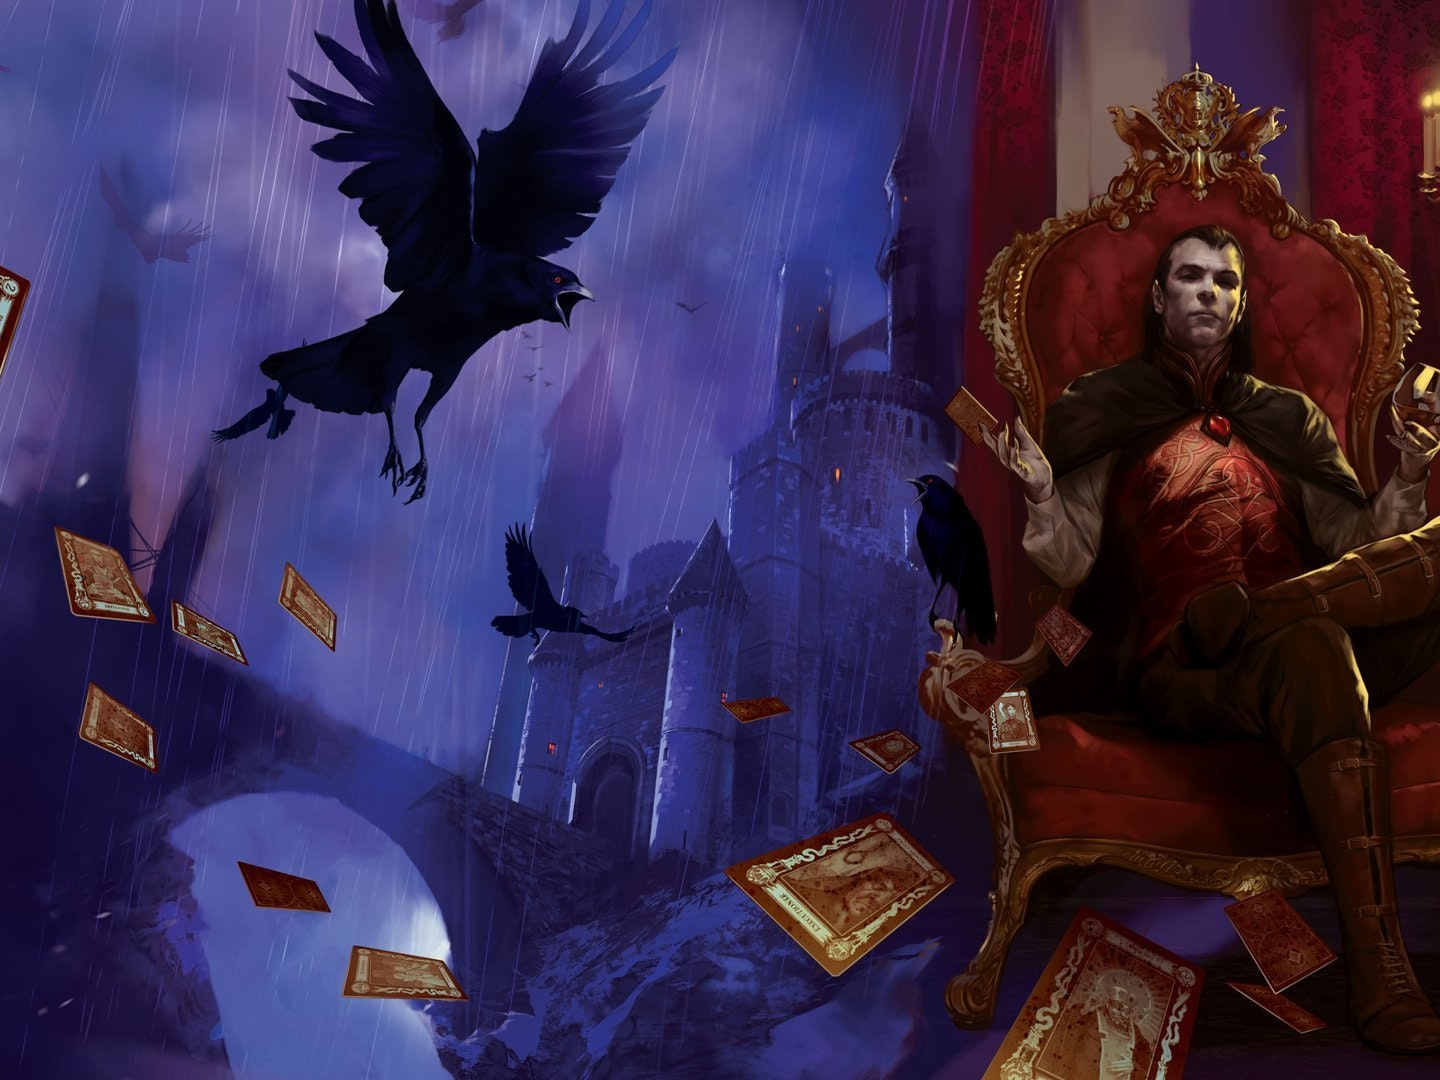 Wizards of the Coast released Curse of Strahd, a new Ravenloft adventure, earlier this year.